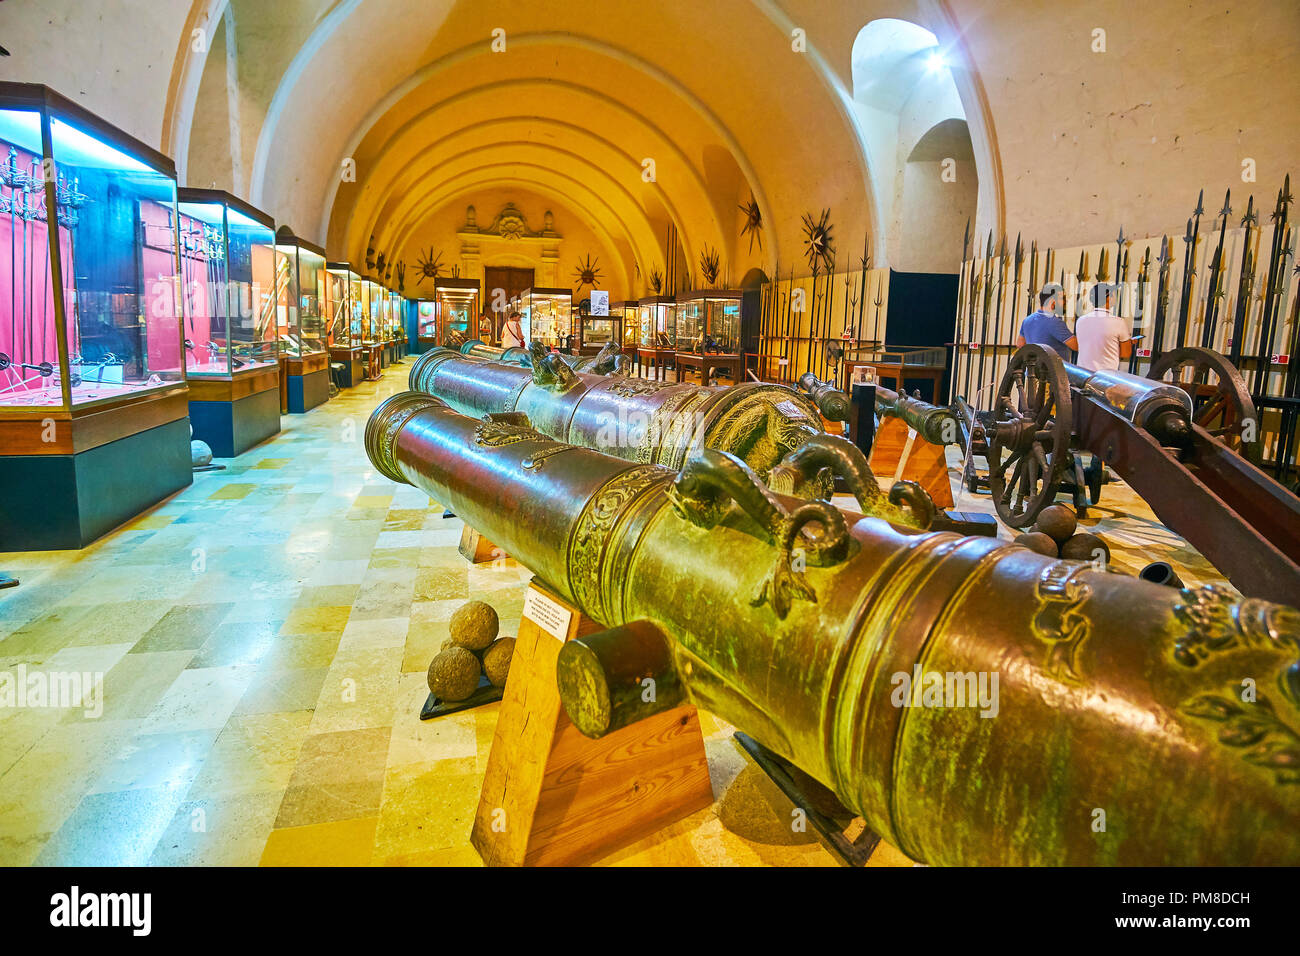 VALLETTA, MALTA - JUNE 17, 2018: Collection of old cannons and crusaders'  spears in Palace Armoury - the arsenal in rear of Grandmaster's Palace, on  - Stock Image